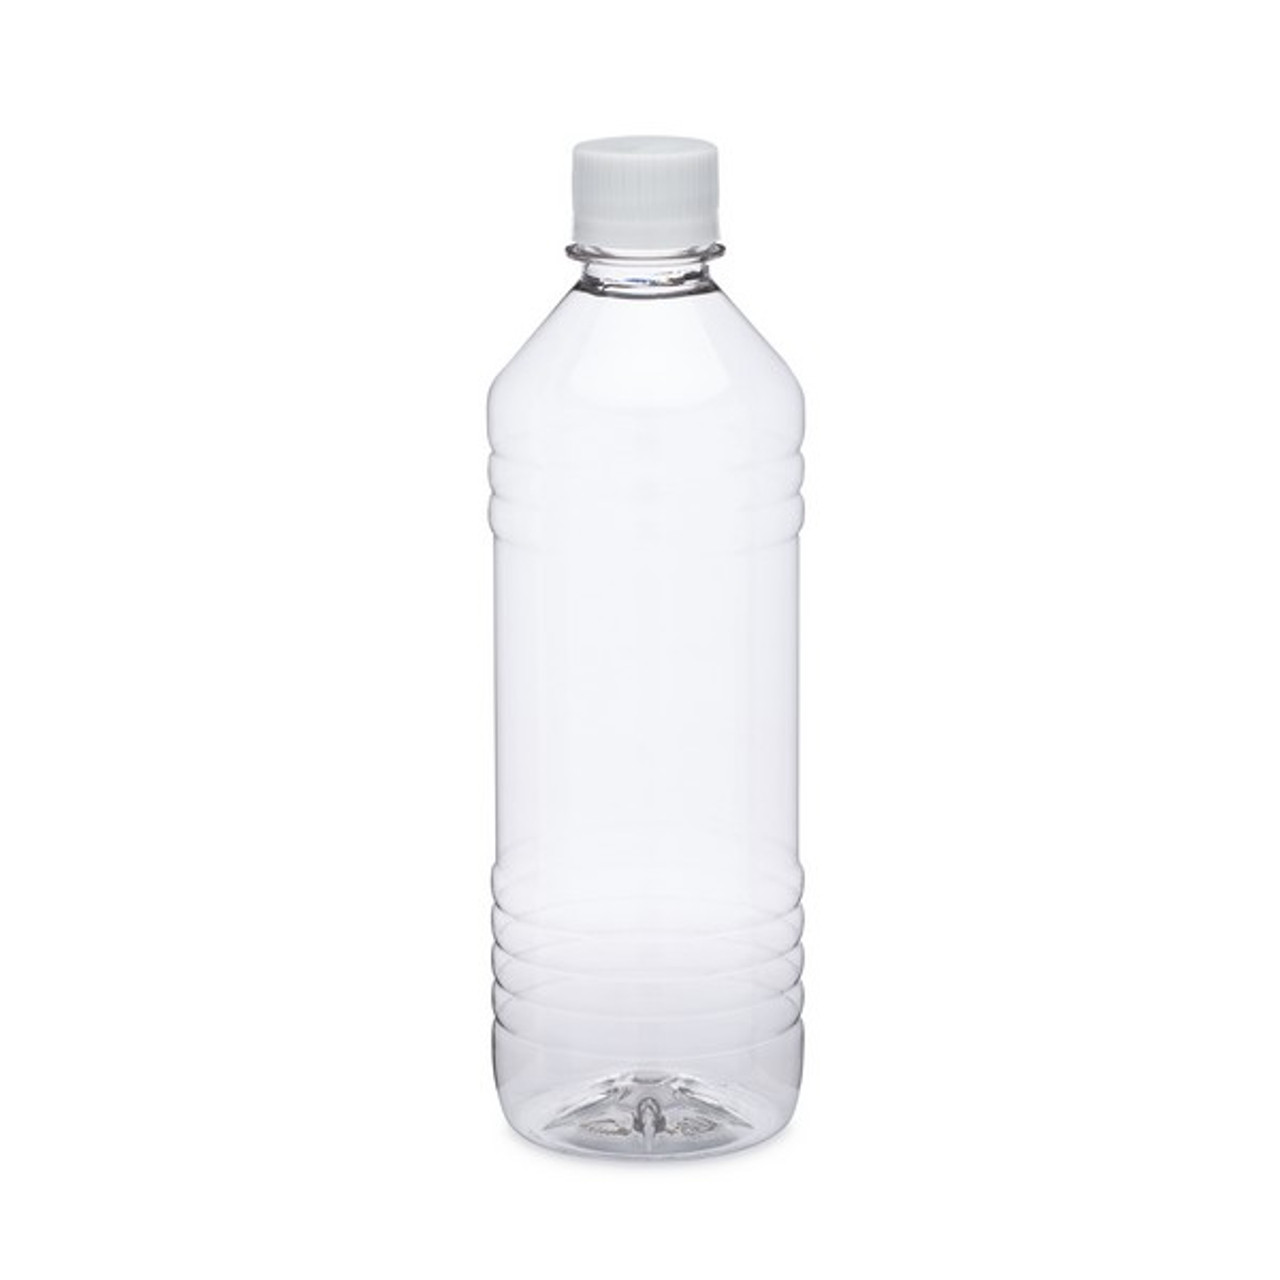 PET Plastic Water Bottles with Tamper-Evident Cap | Berlin